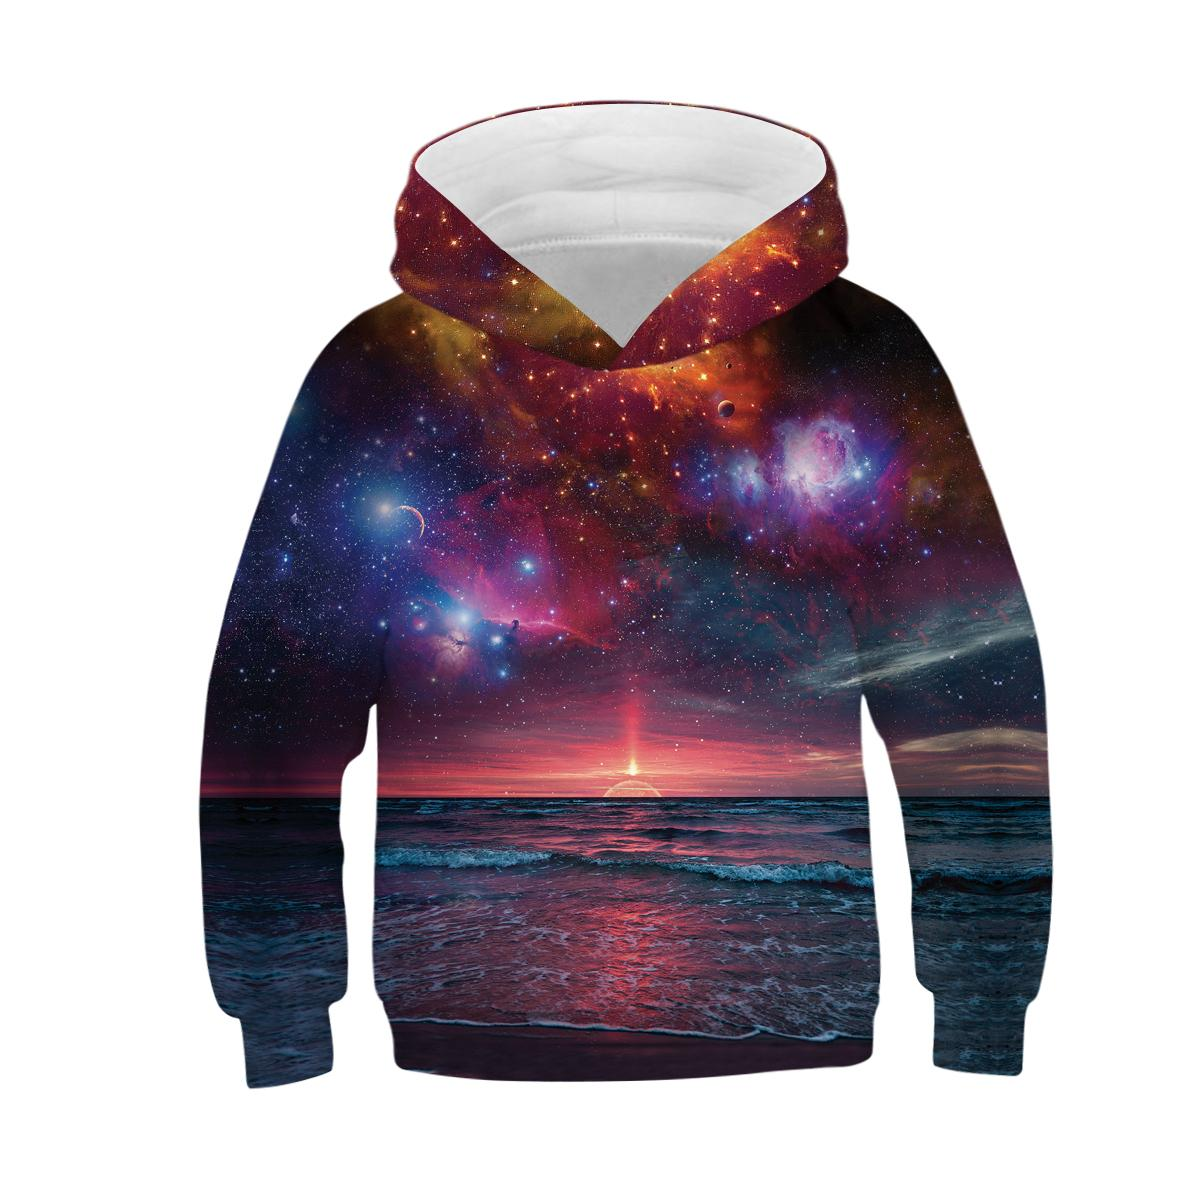 New Star Space Galaxy Hoodies Hooded Boy Girl Hat 3D Sweatshirts Print Colorful Nebula Kids Fashion Pullovers Clothes Tops